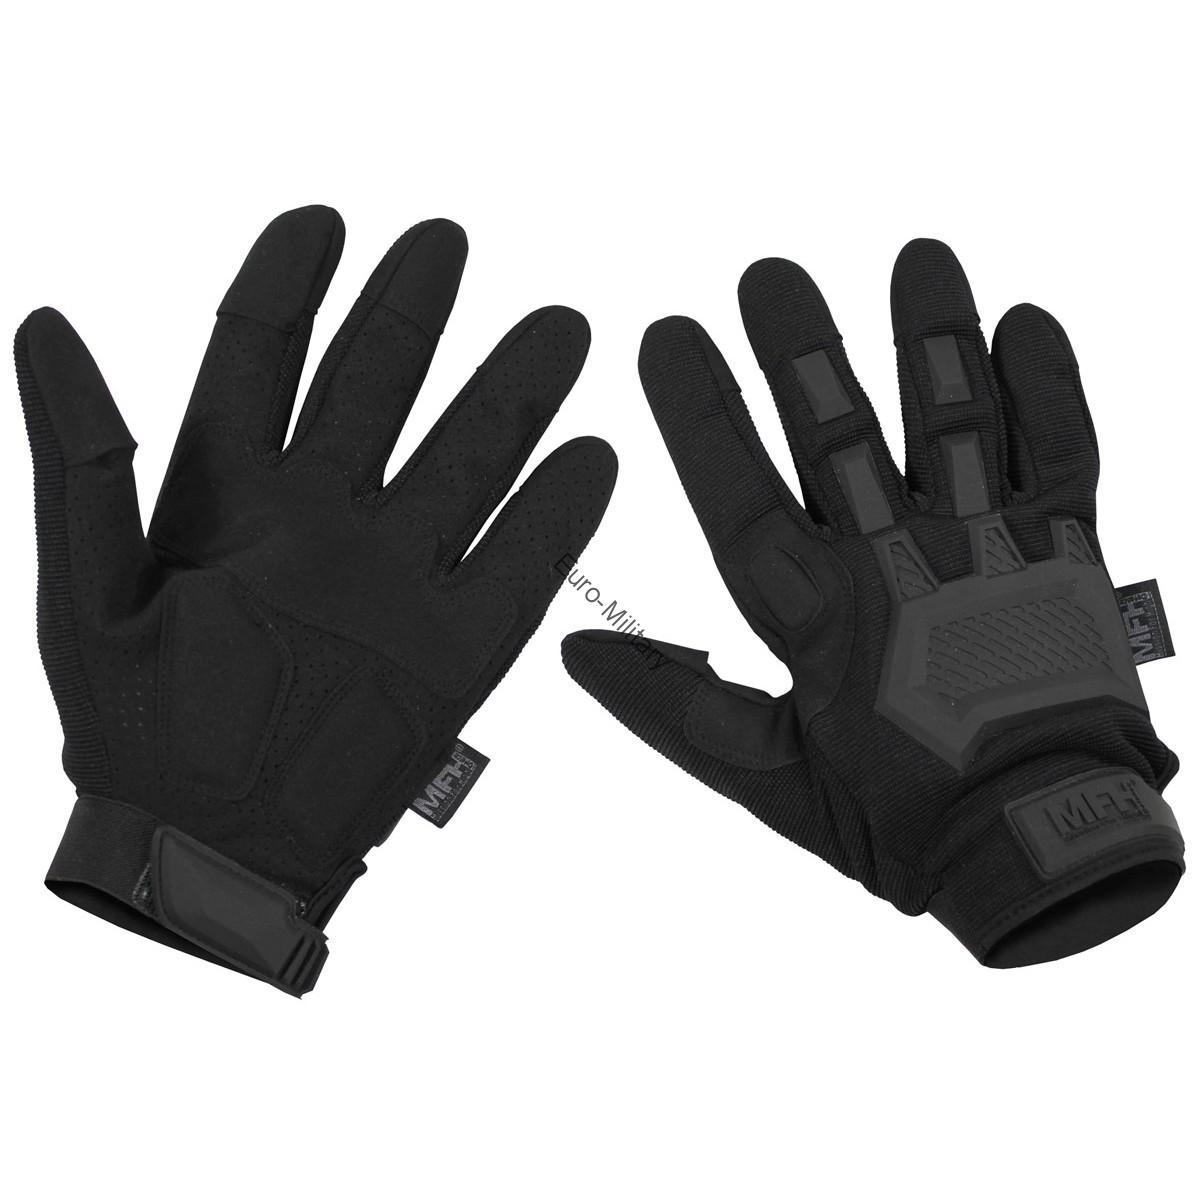 Tactical Military Shooting Profi Gloves - Black